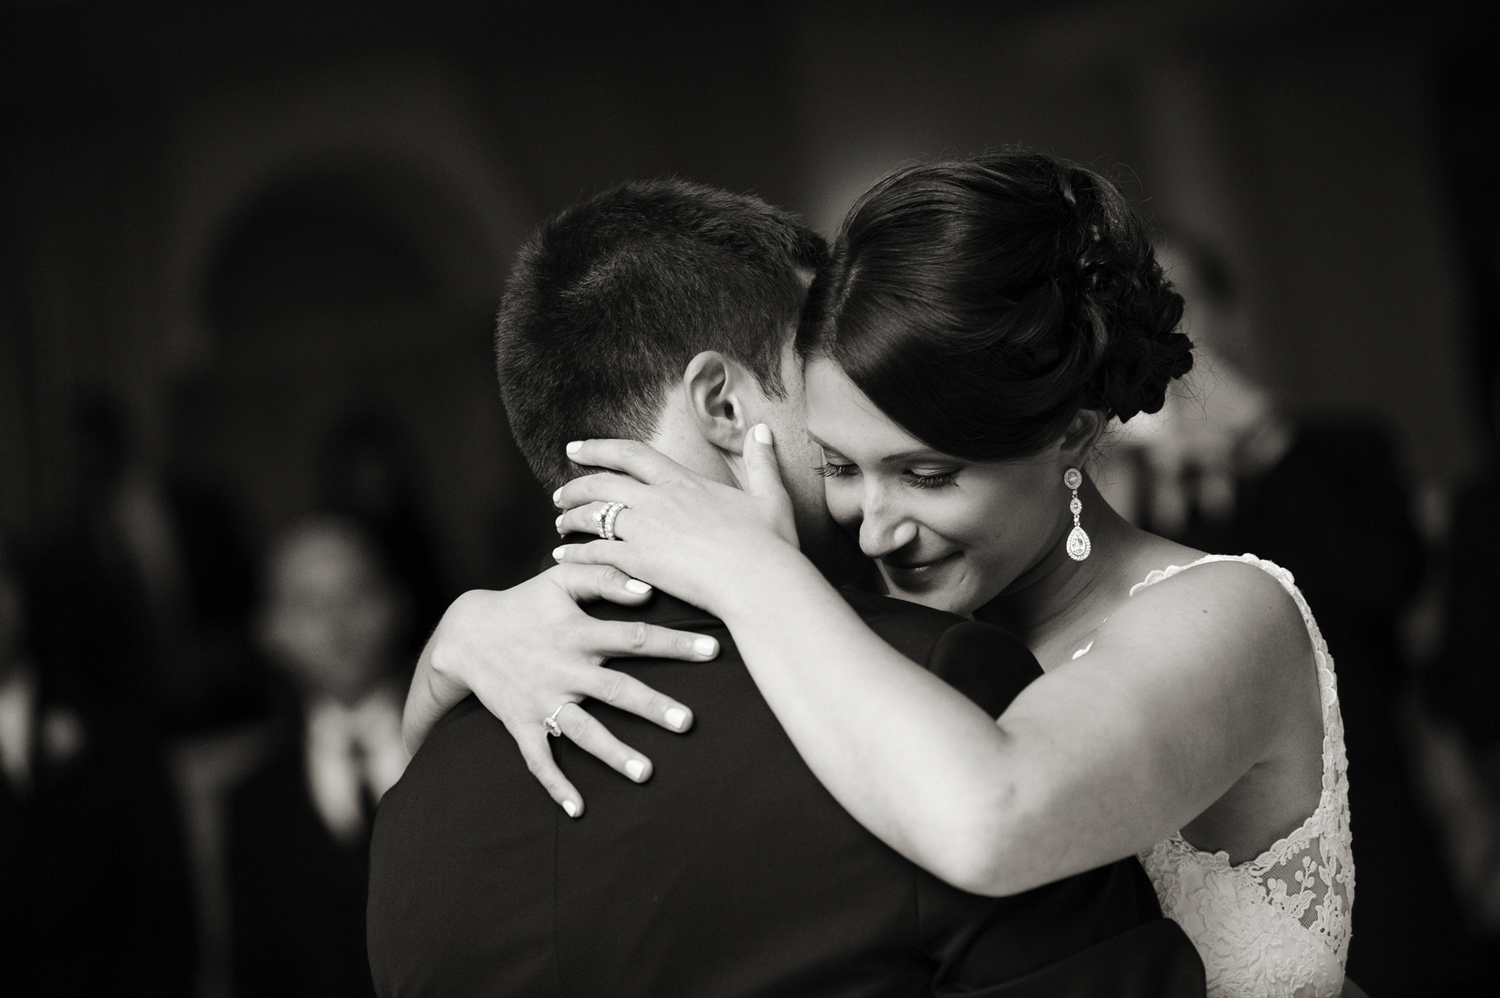 Bride and groom's first dance as married couple at their wedding at Nanina's in the Park. NJ wedding photographers